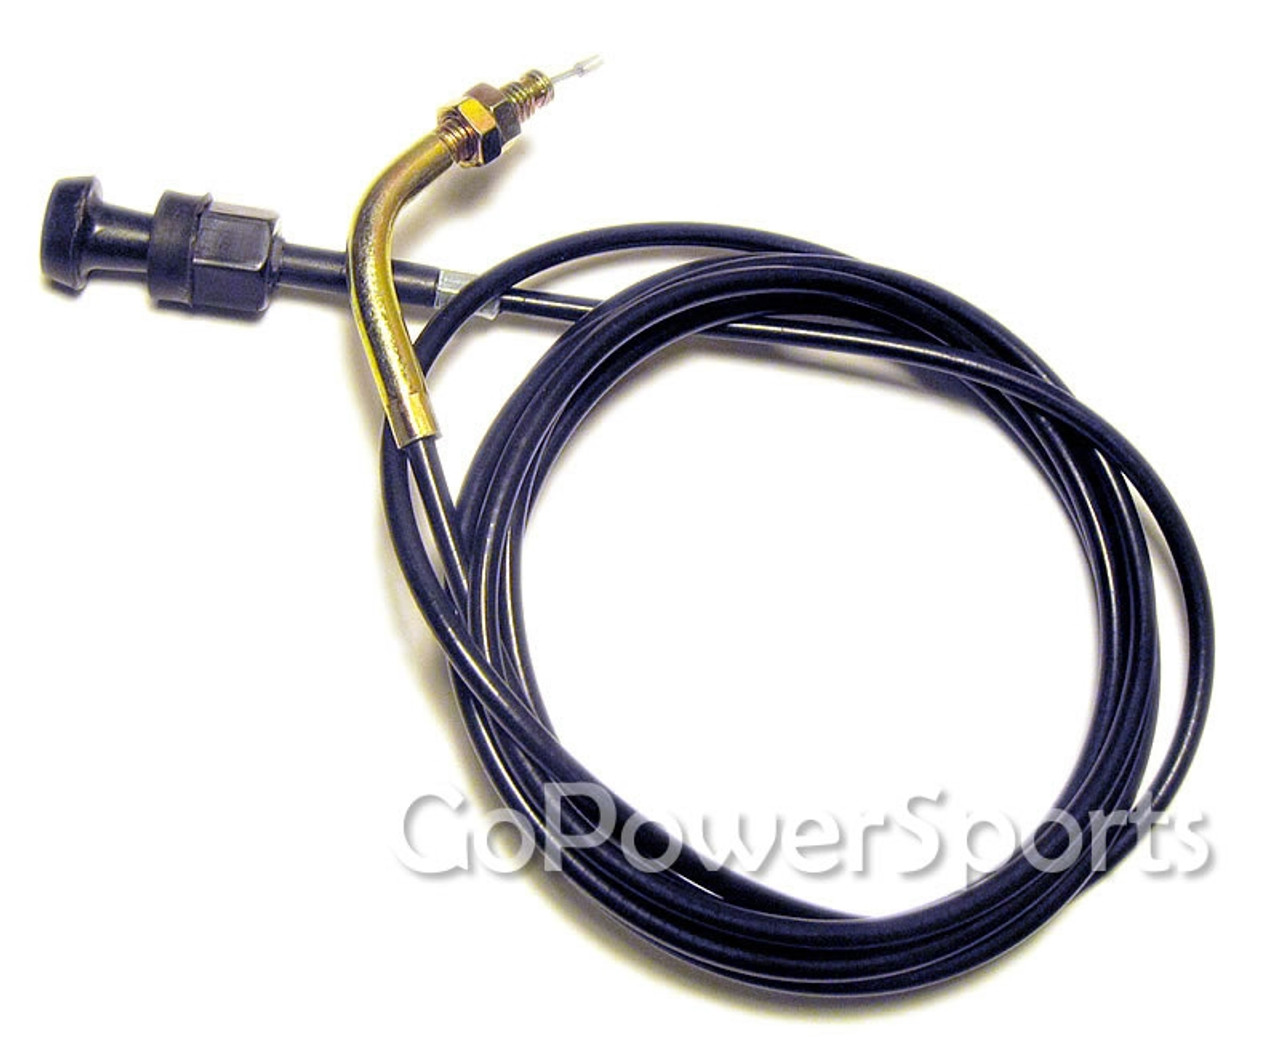 108 Midxrx 80t Choke Cable Gopowersports